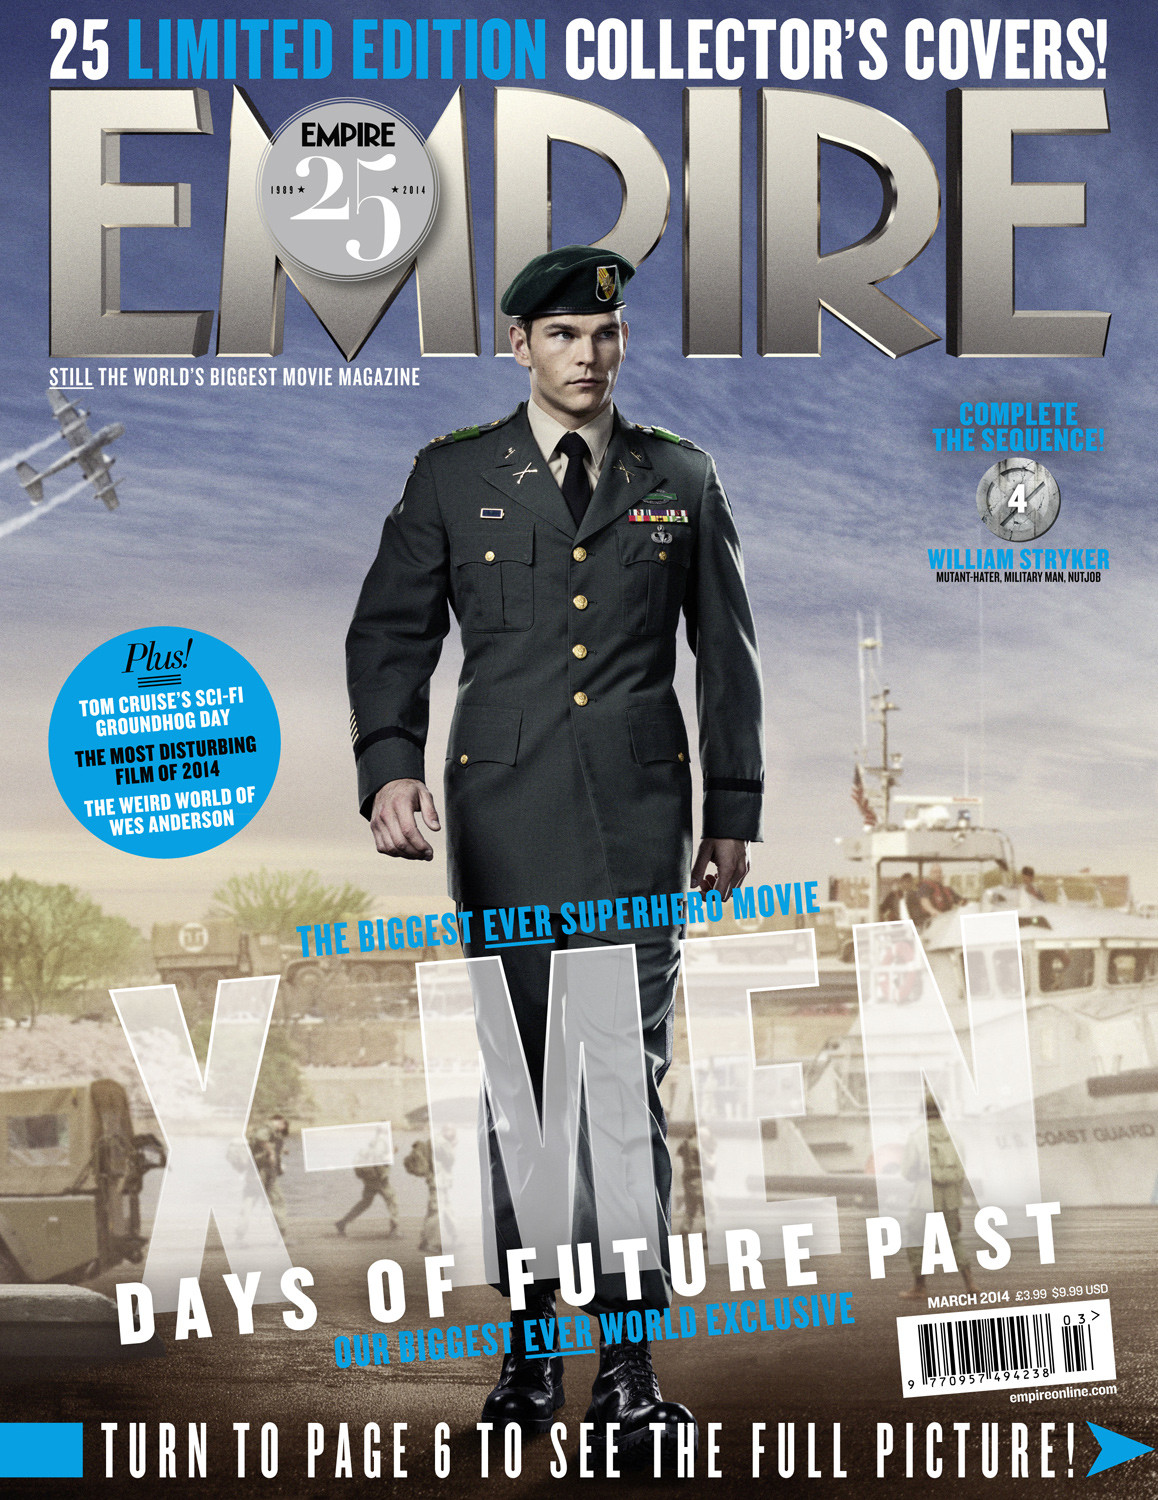 Empire - XDOFP Cover - 004 - William Stryker